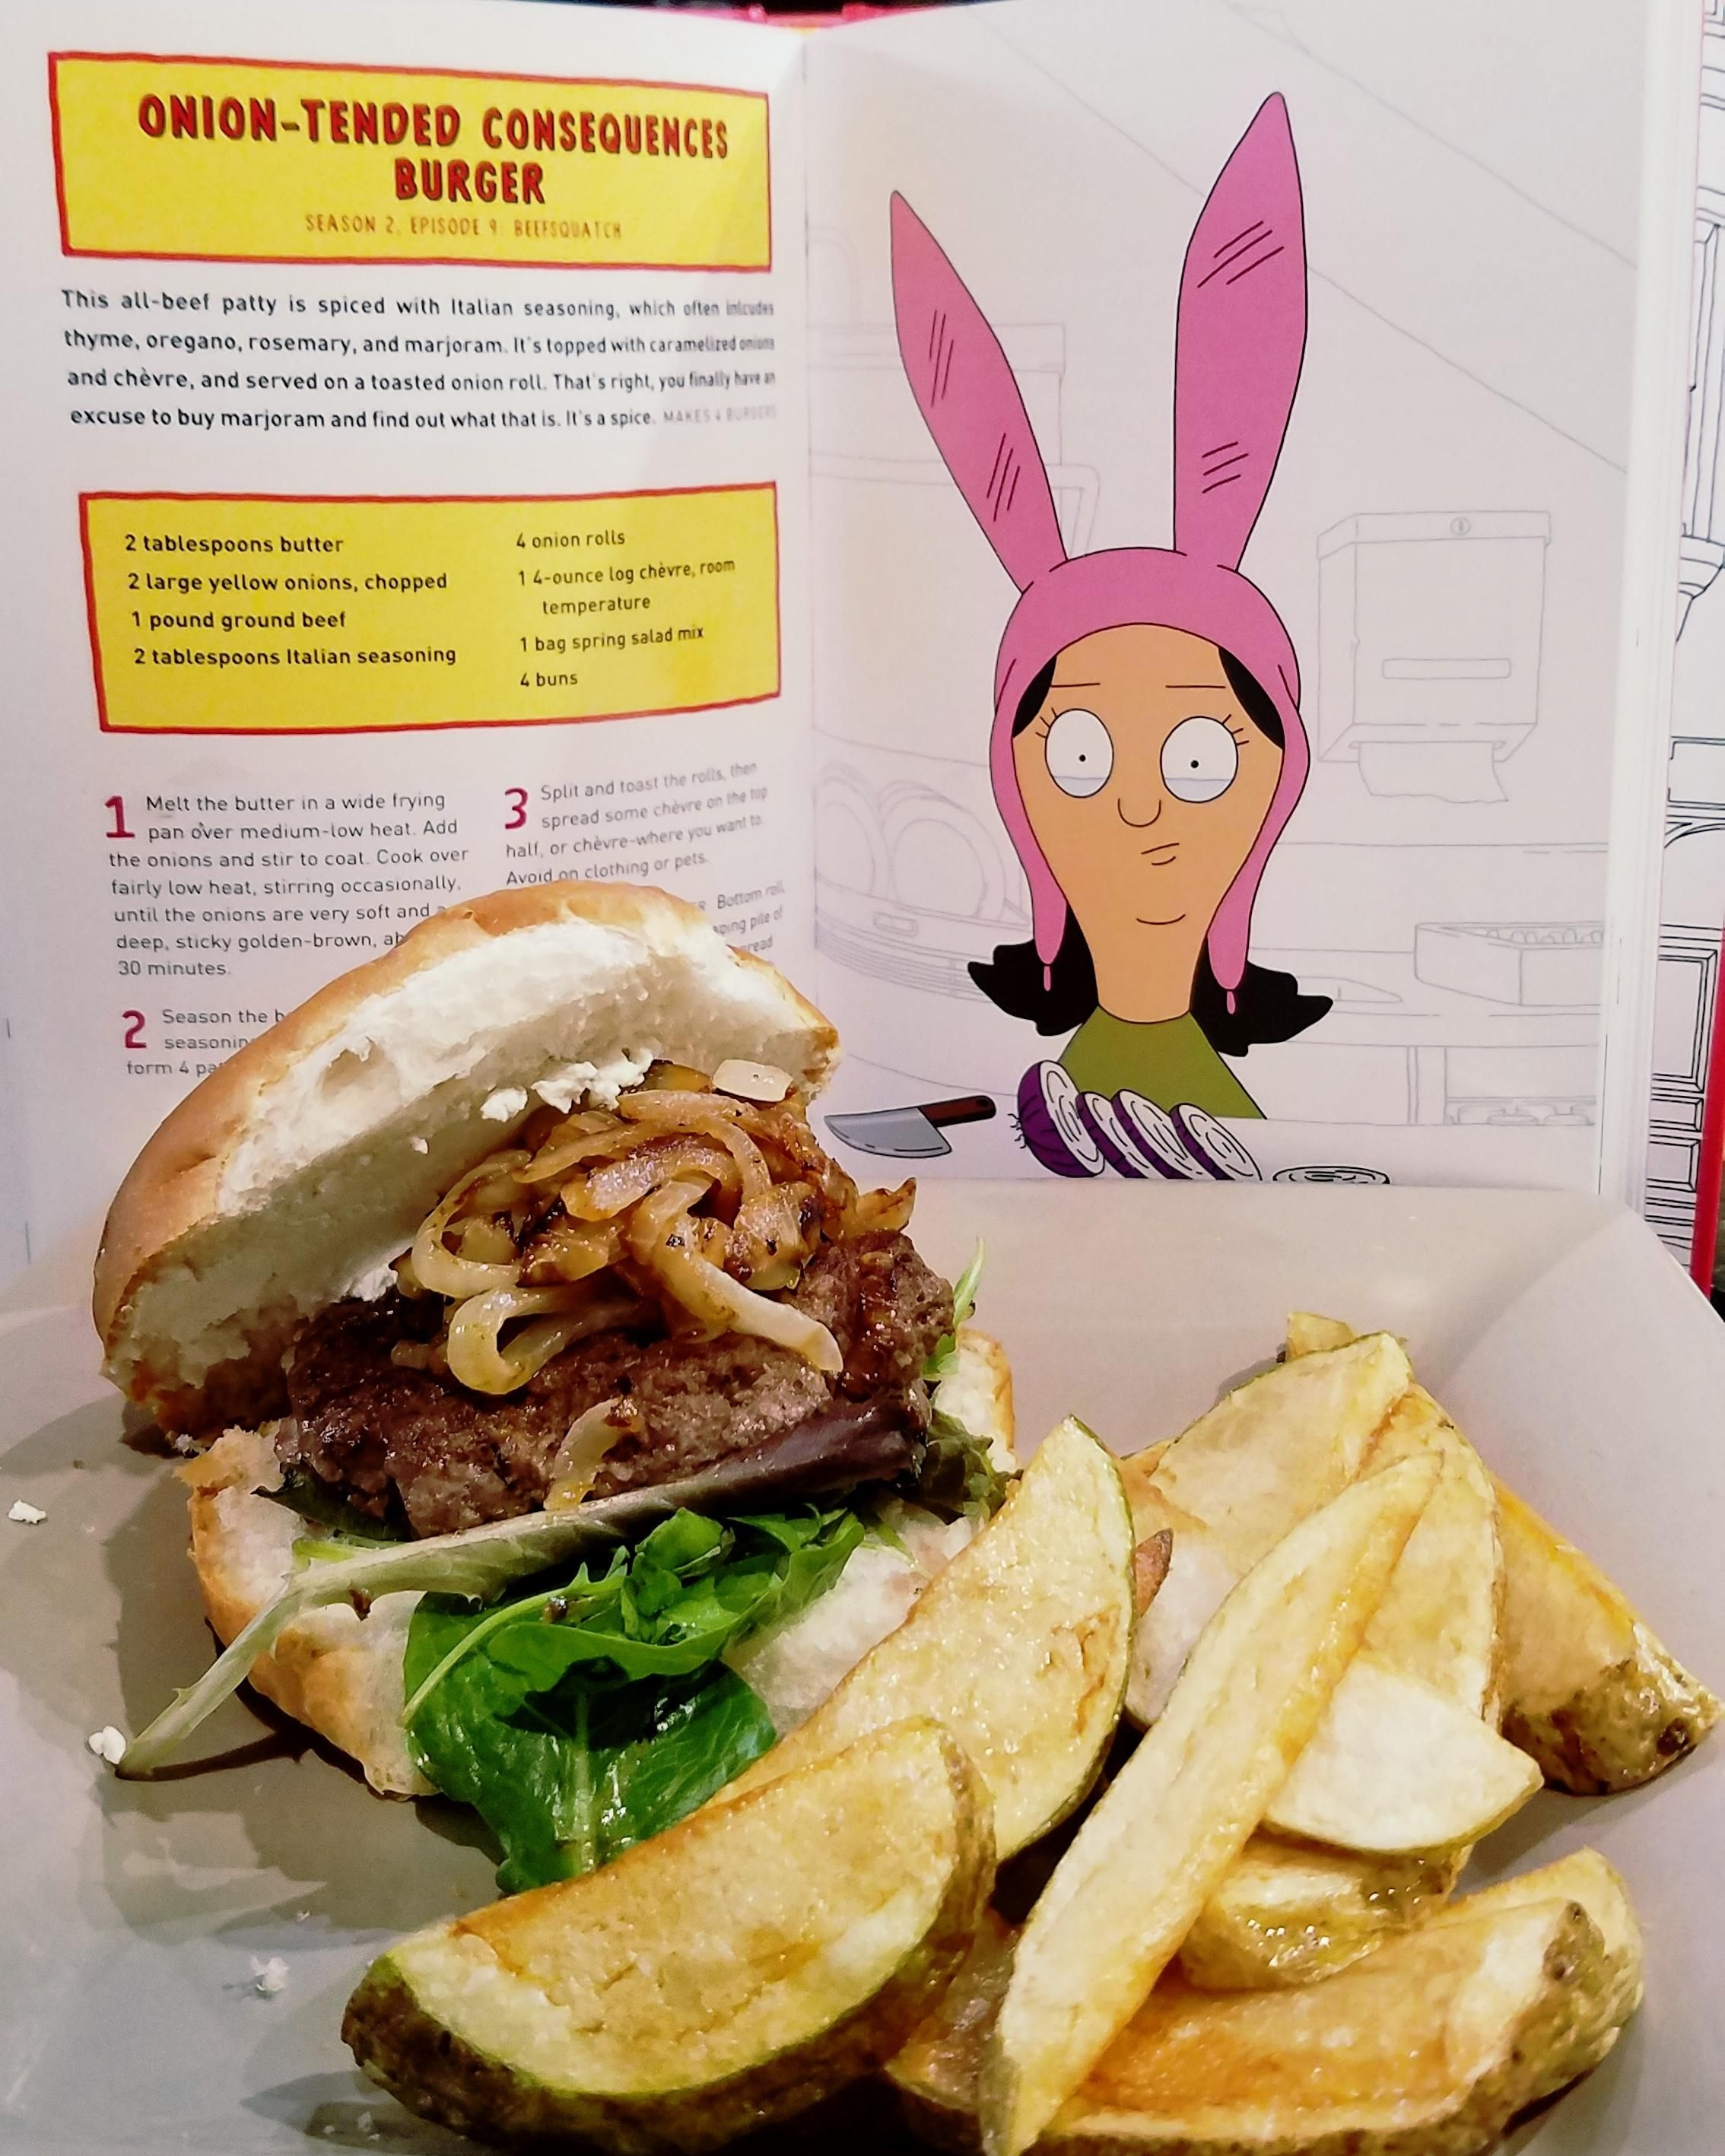 Free Bobs Burgers Porn homemade] onion-tended consequences burger from bob's